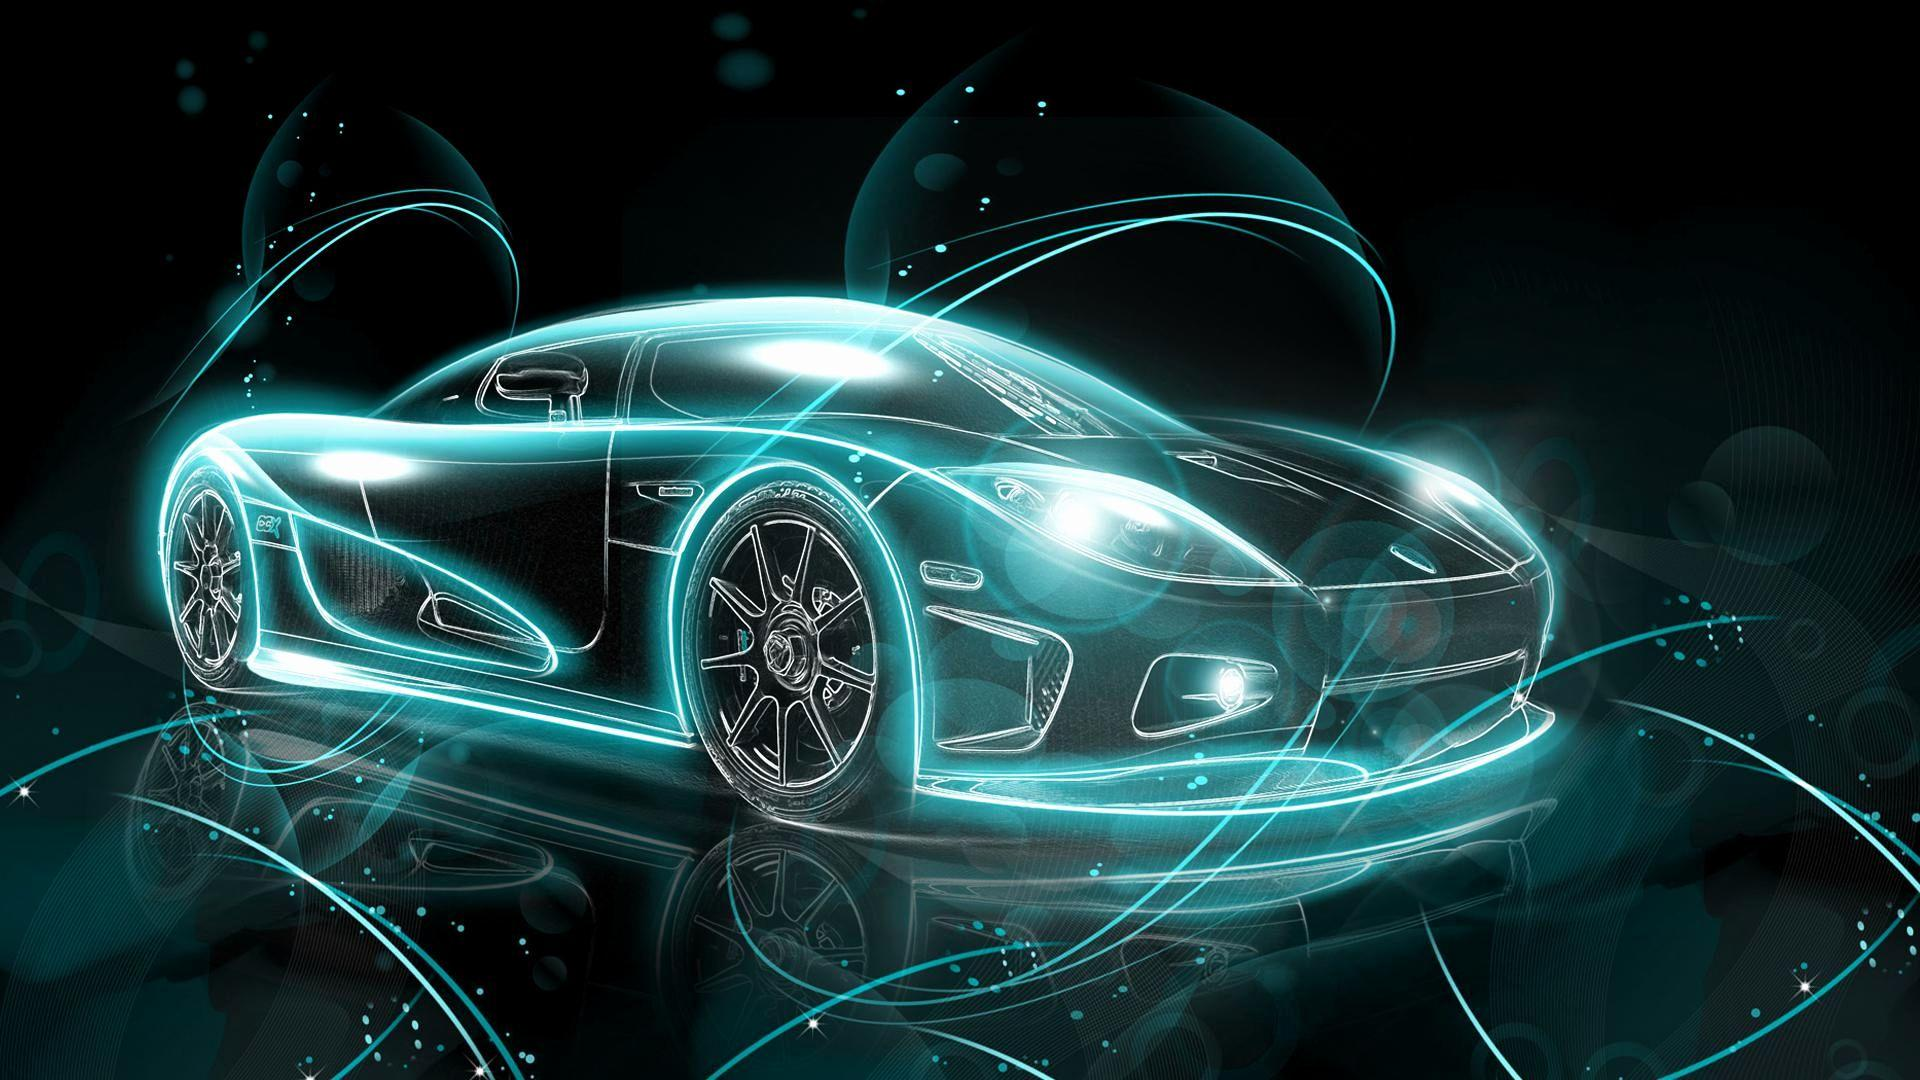 Cool Car Wallpapers Fresh Neon Car Wallpaper Wallpapersafari U2013 Car .